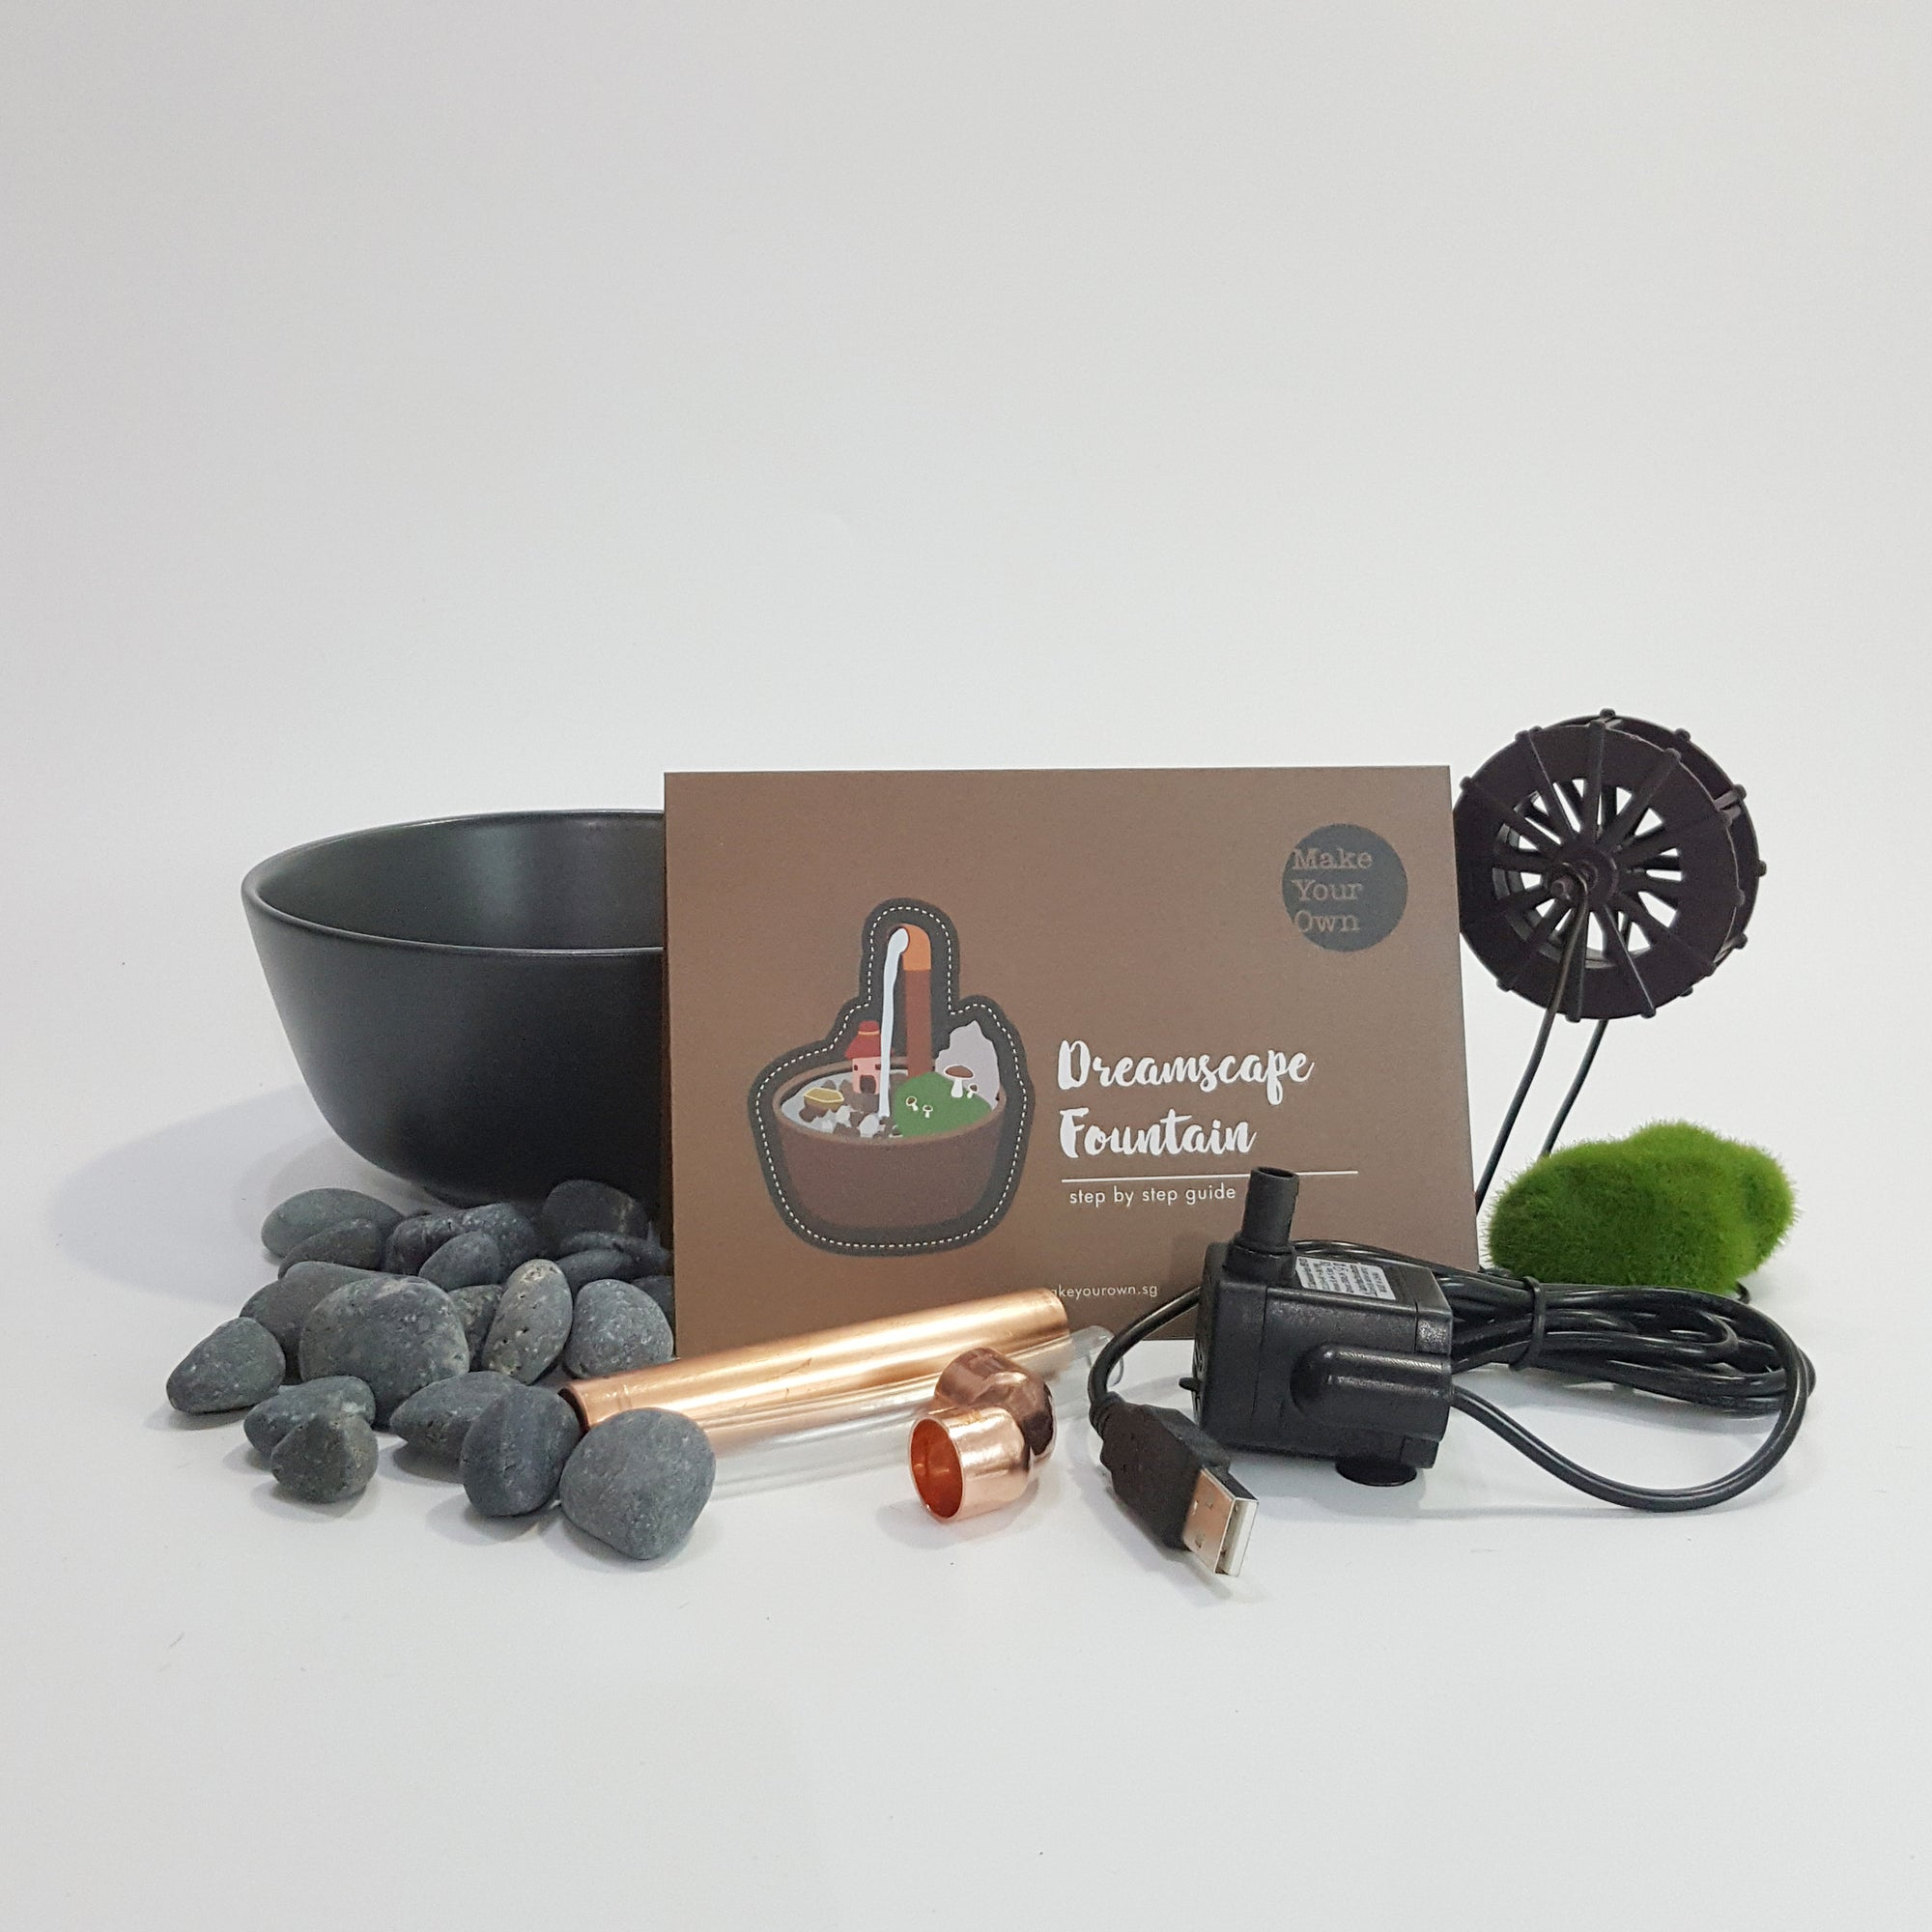 dreamscape fountain diy kit Singapore